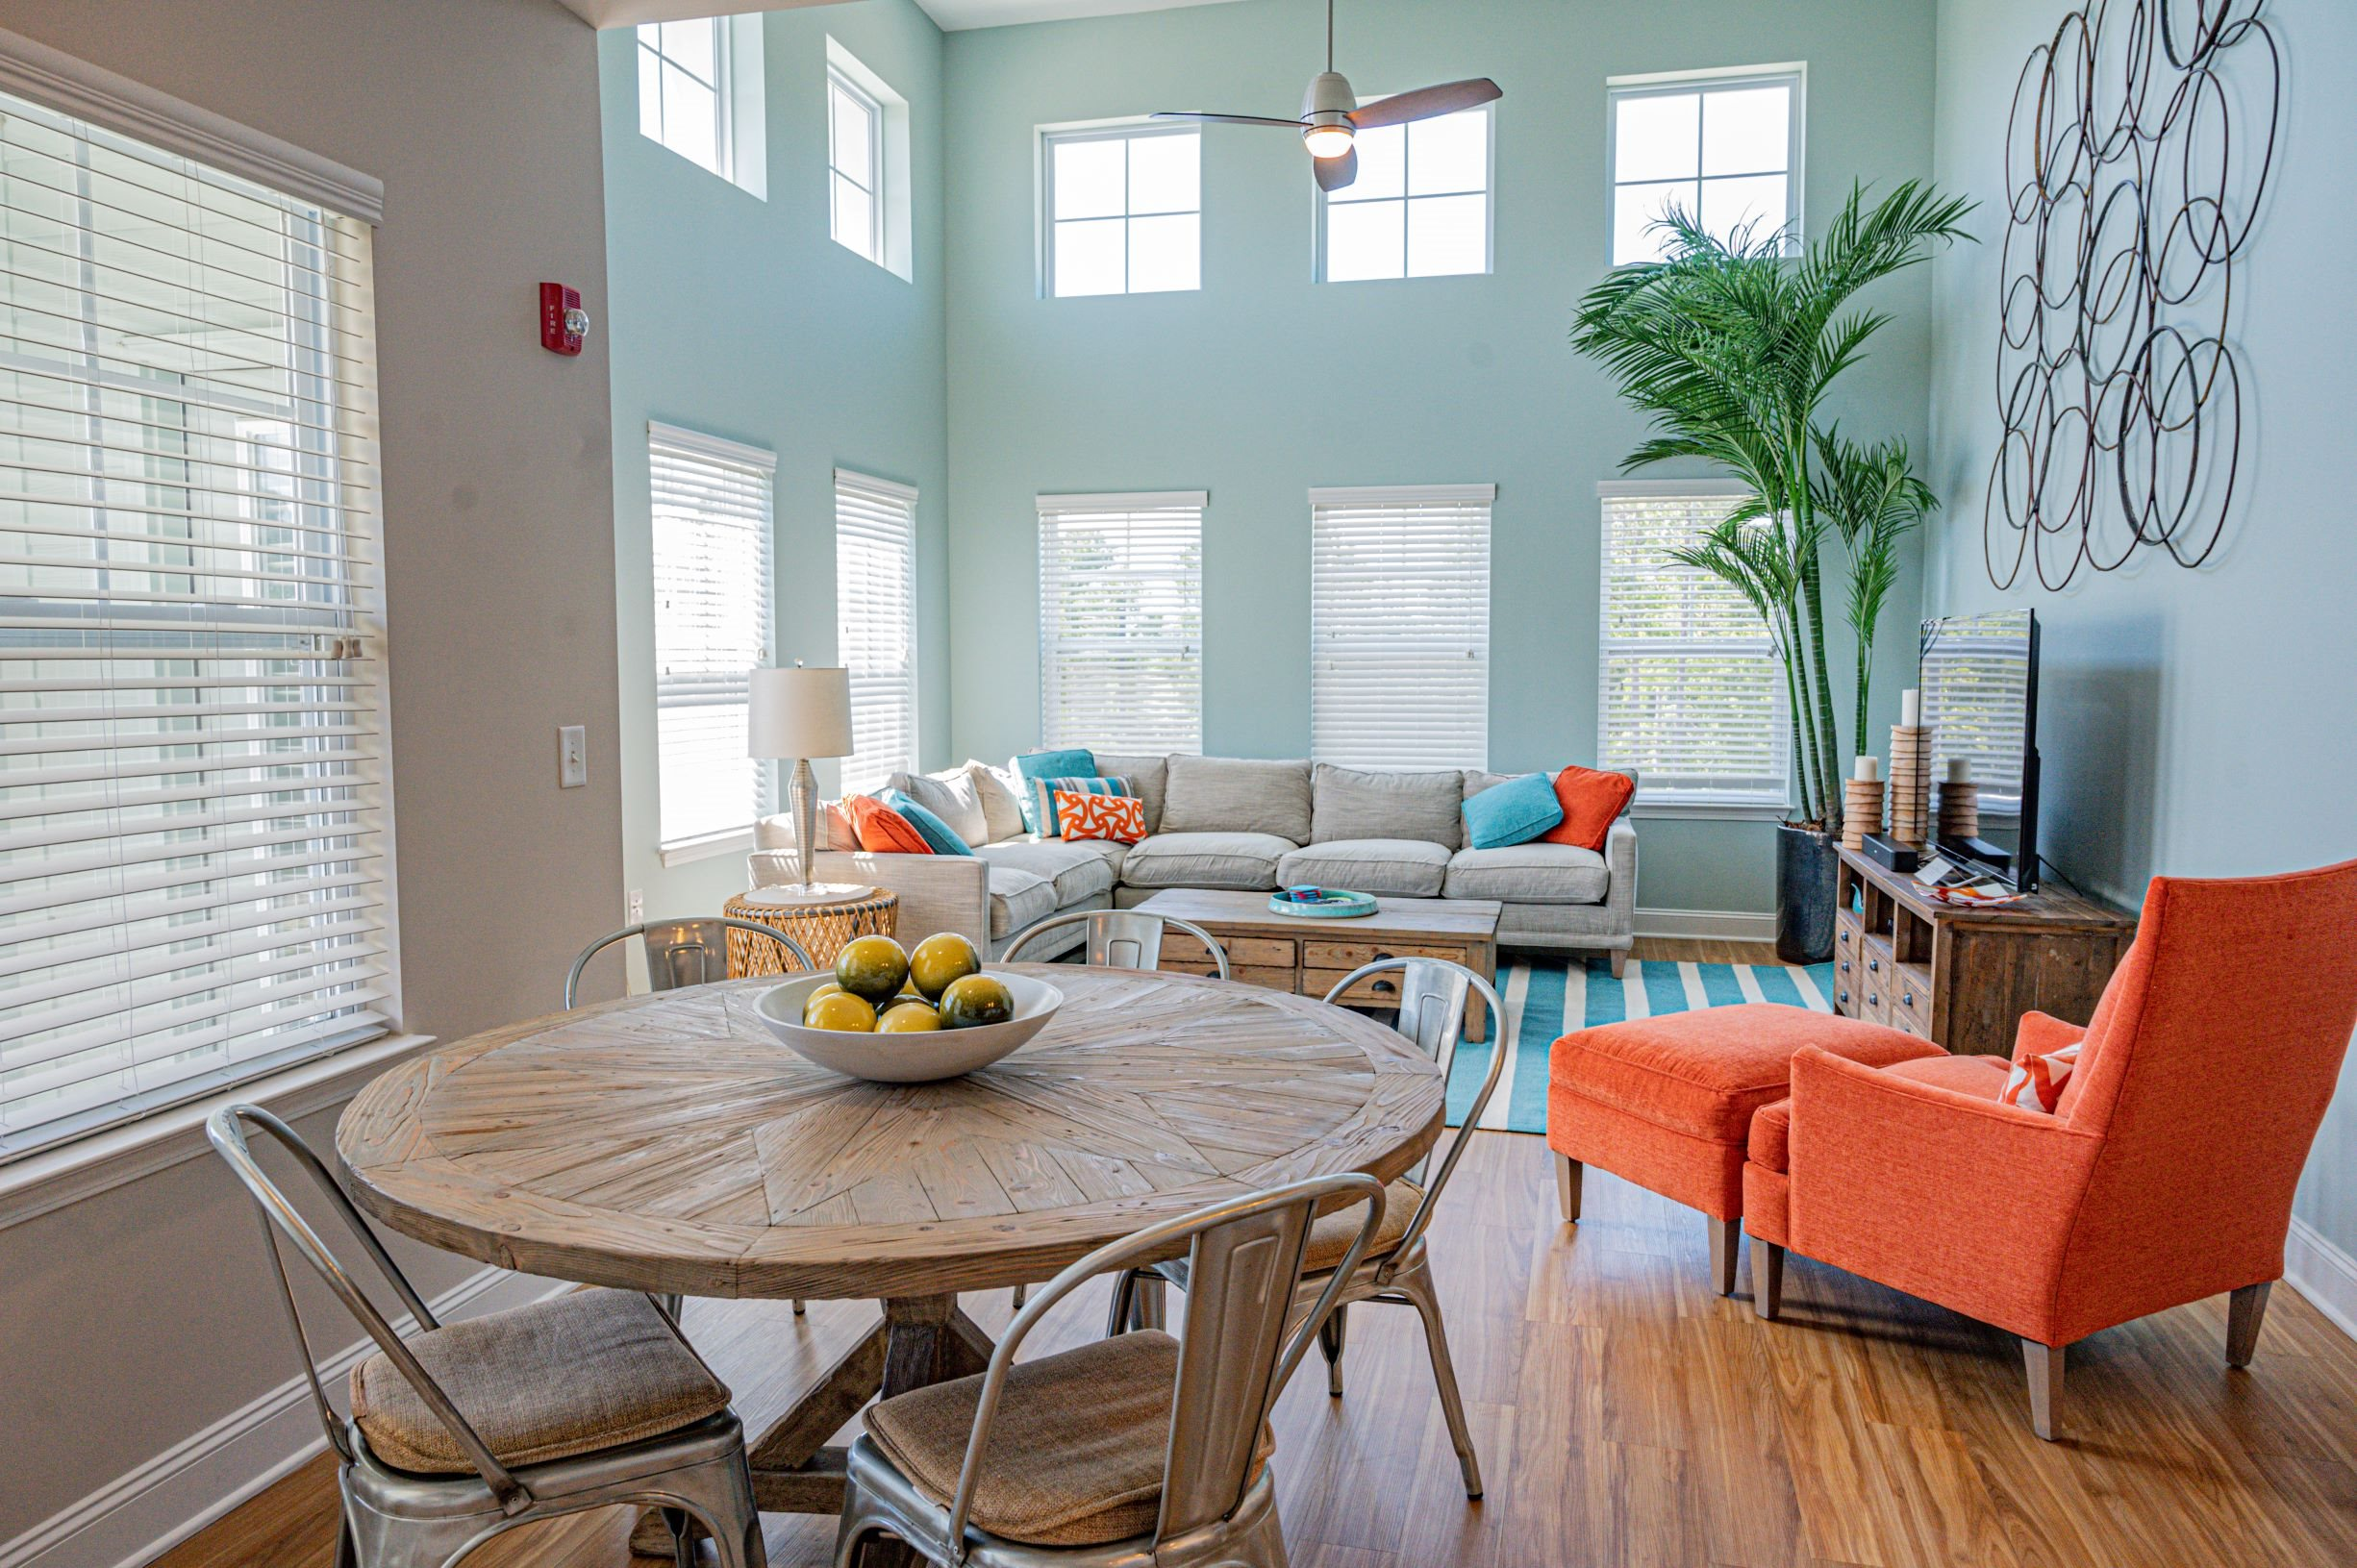 Dining Room Area at Hawthorne at the Station in Wilmington, NC